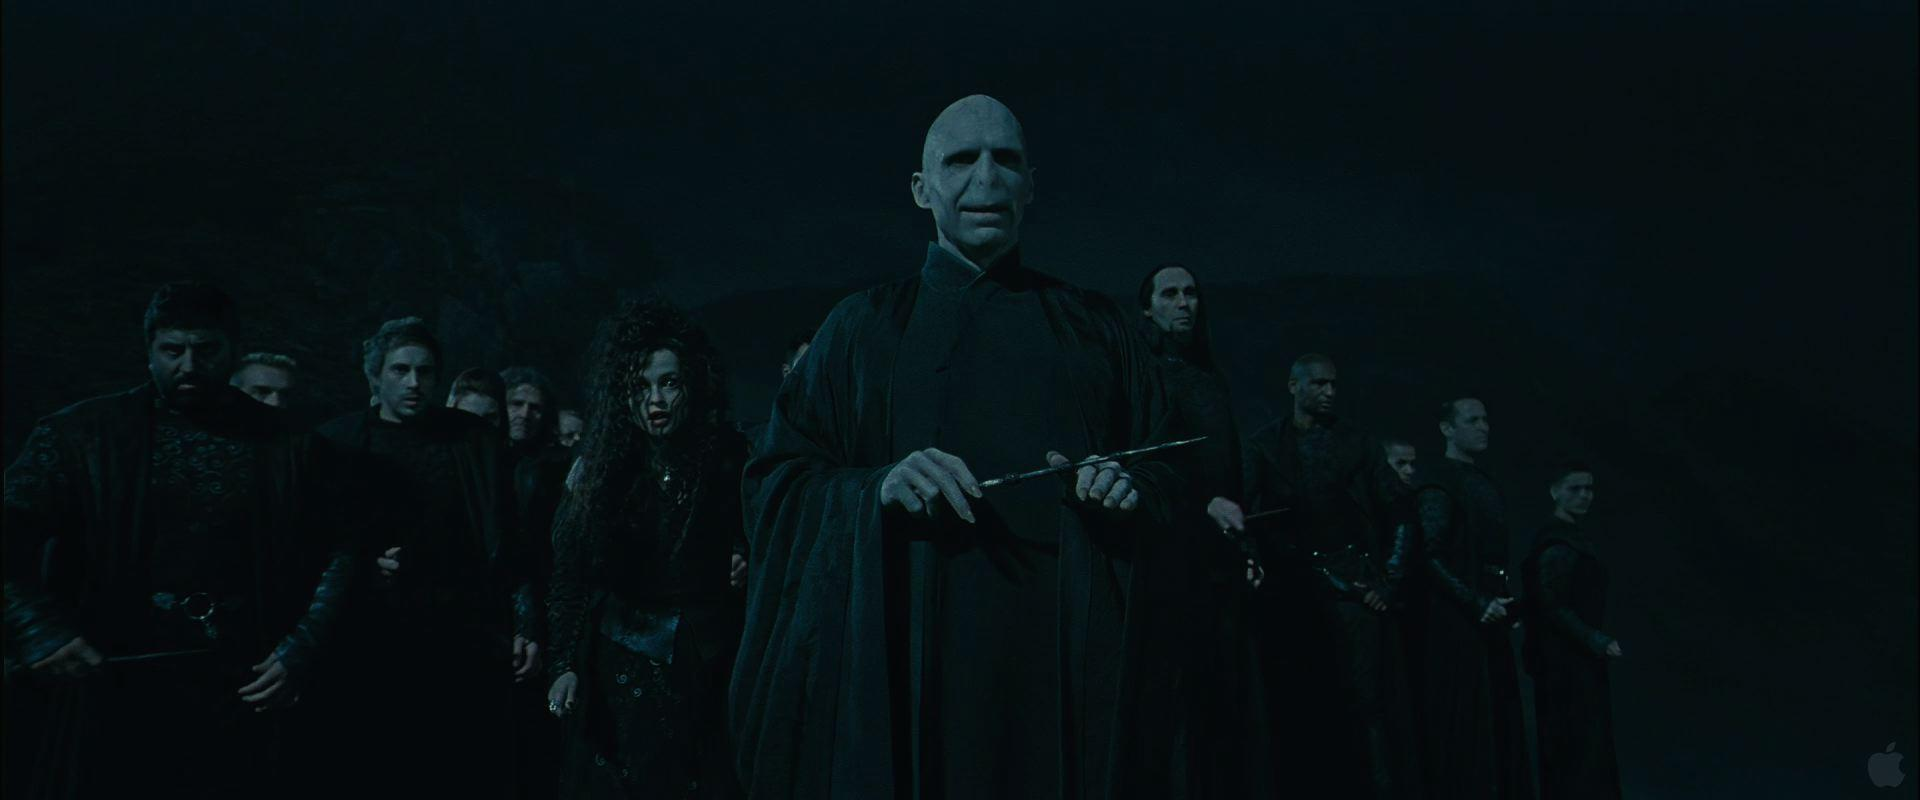 Lord Voldemort from Harry Potter Deathly Hallows Desktop Wallpaper